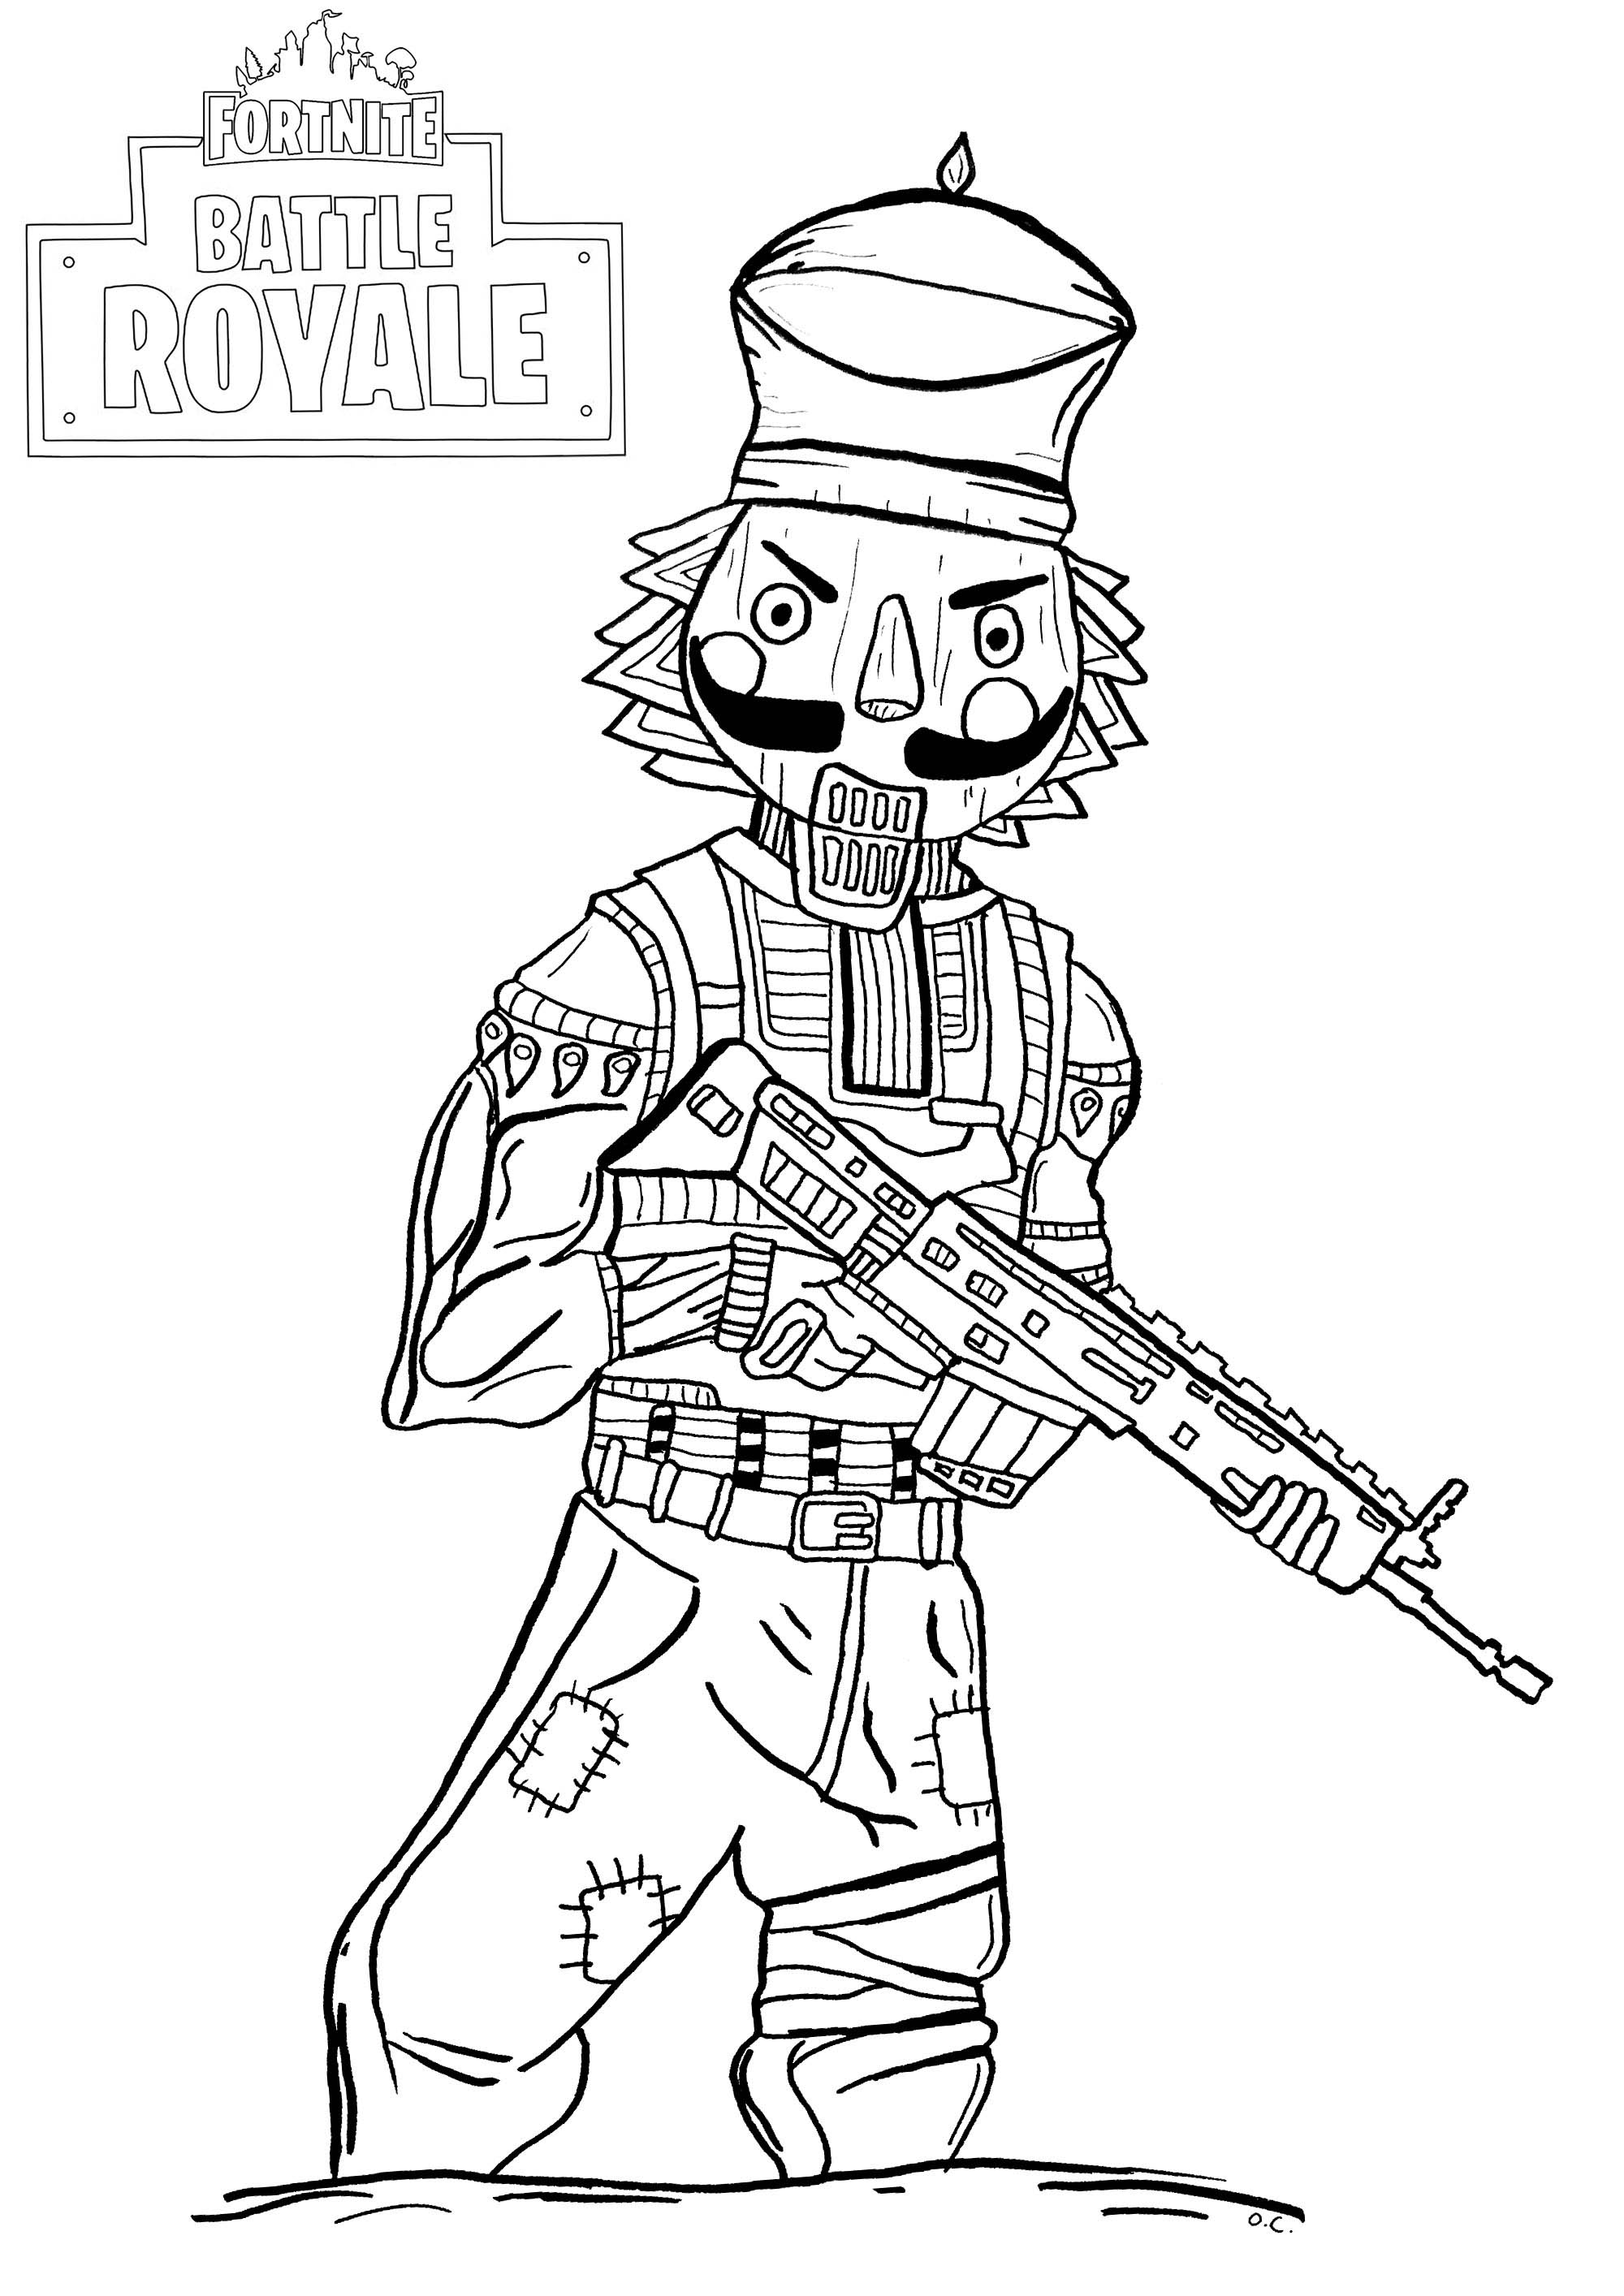 Fortnite Battle Royale Crackshot Fortnite Battle Royale Kids Coloring Pages